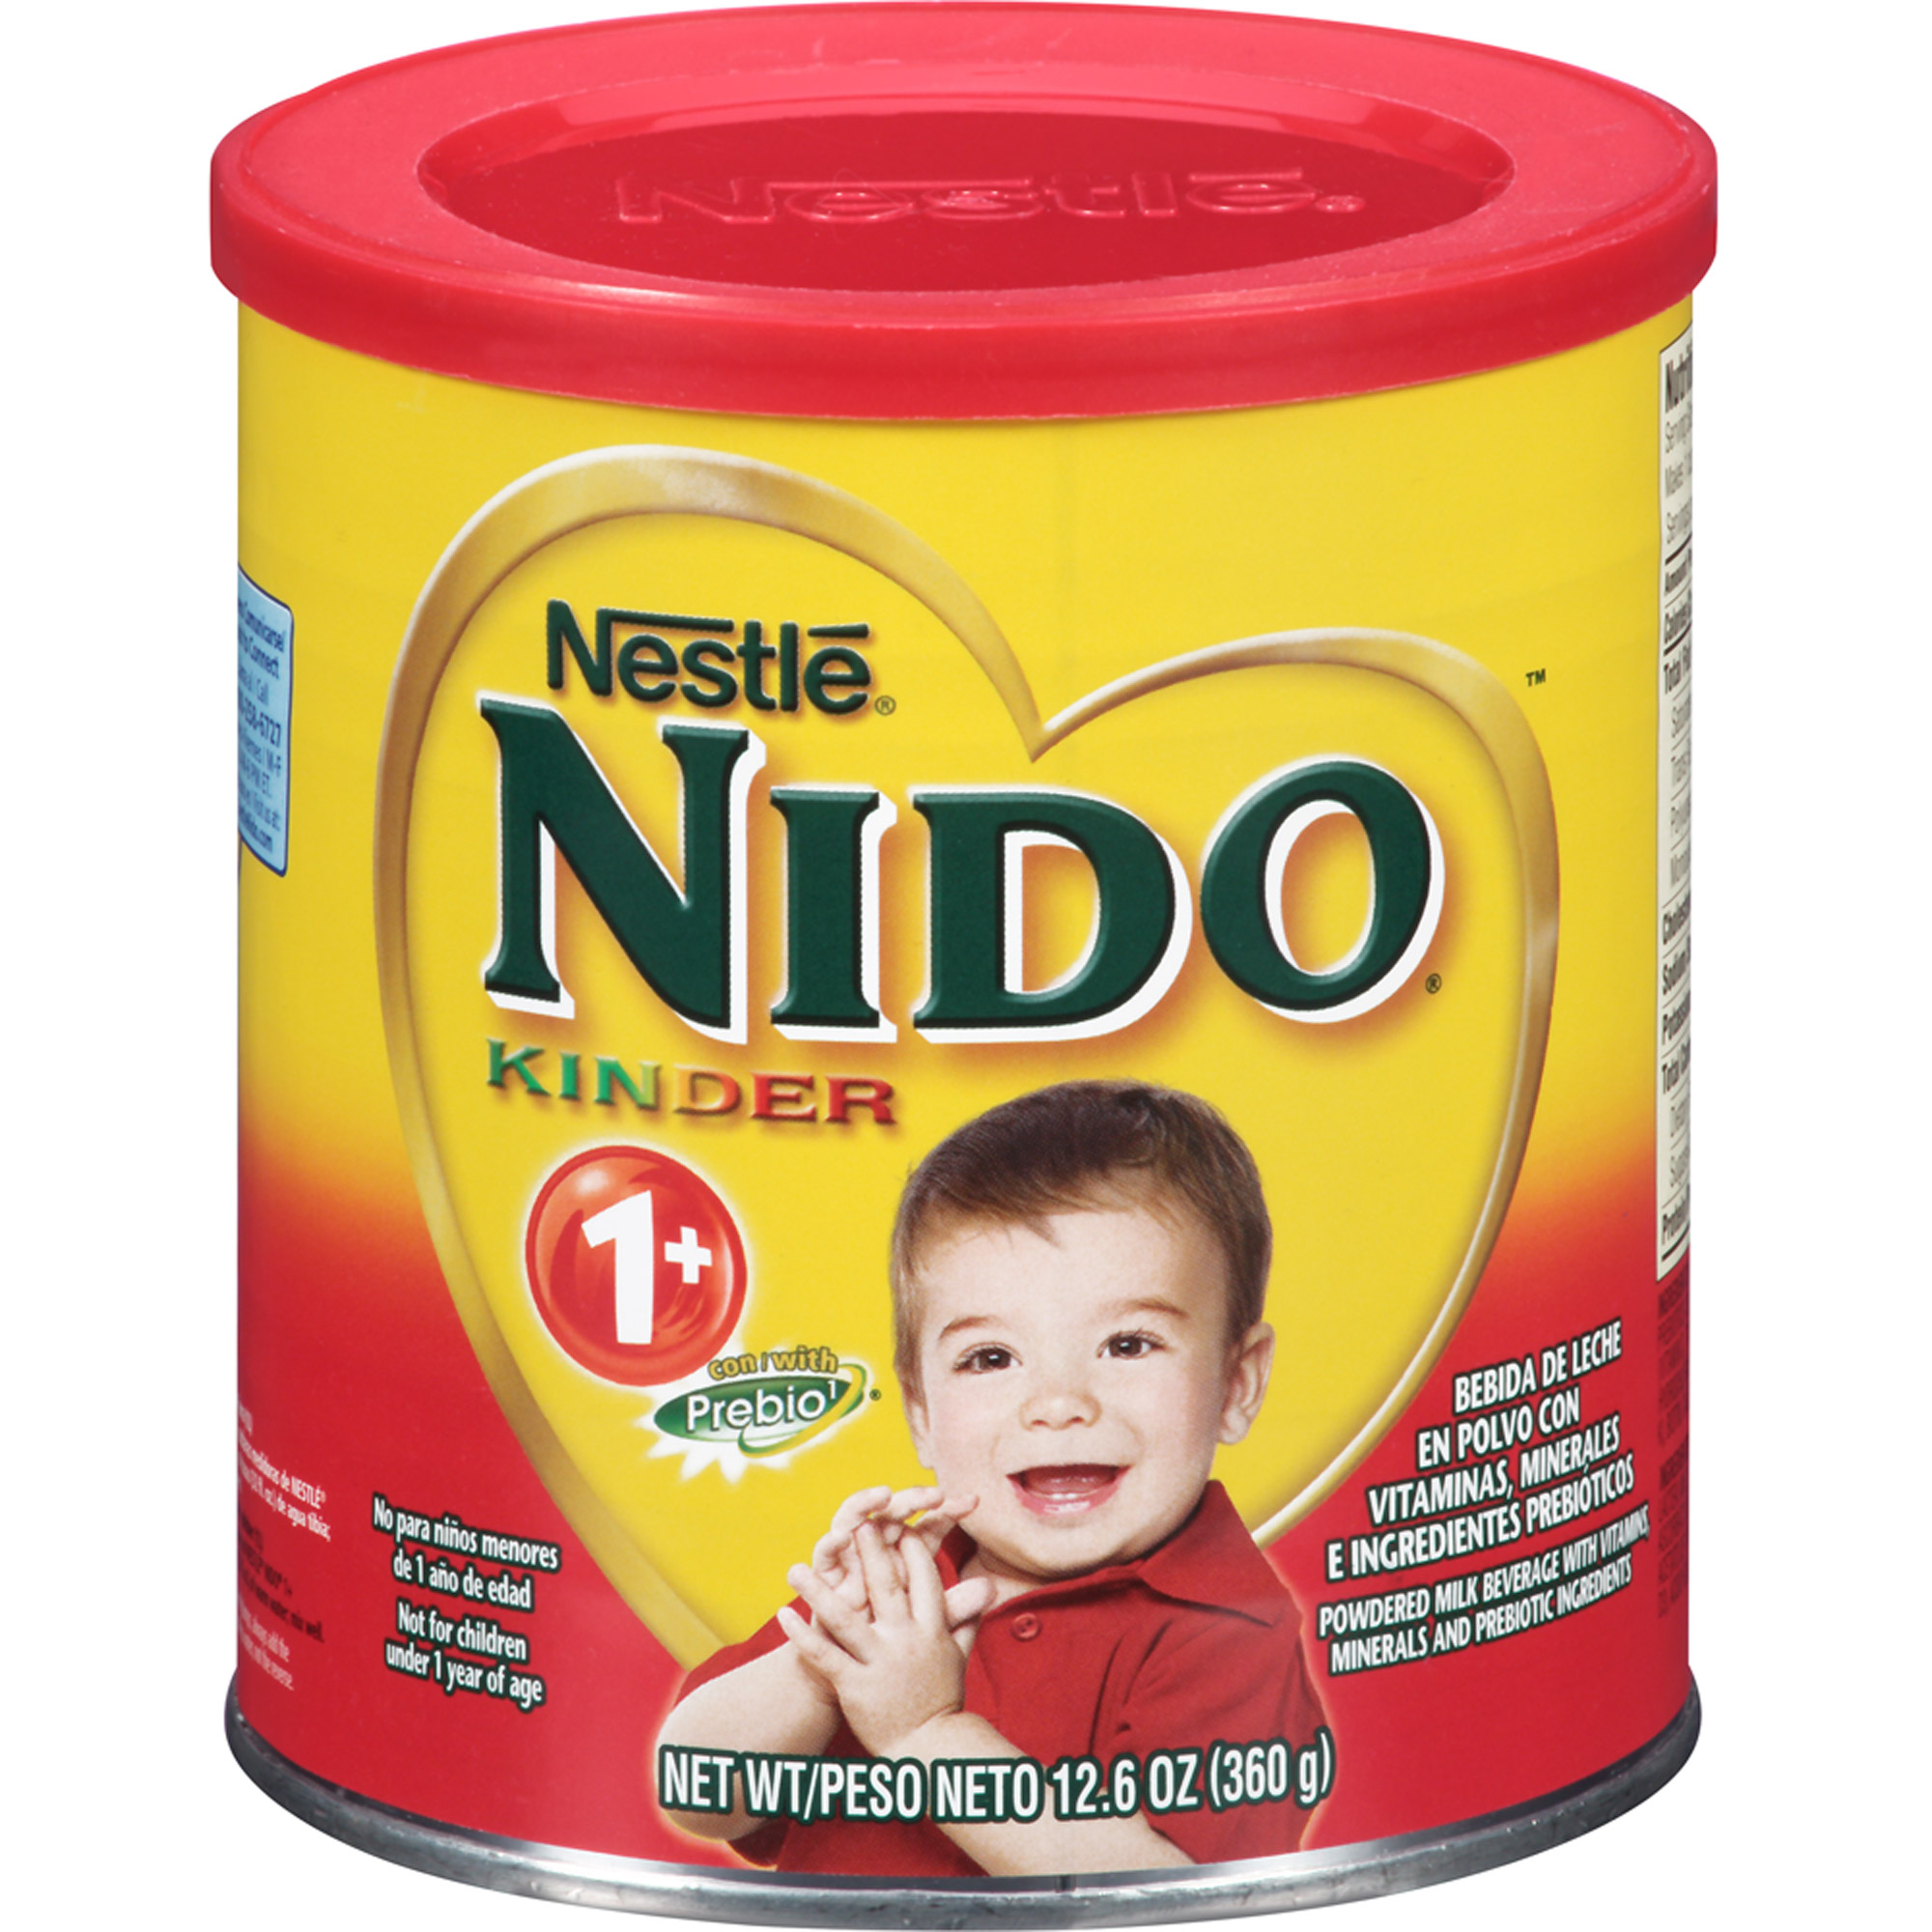 Nestle Nido Kinder 1  Powdered Milk Beverage, 12.6 oz